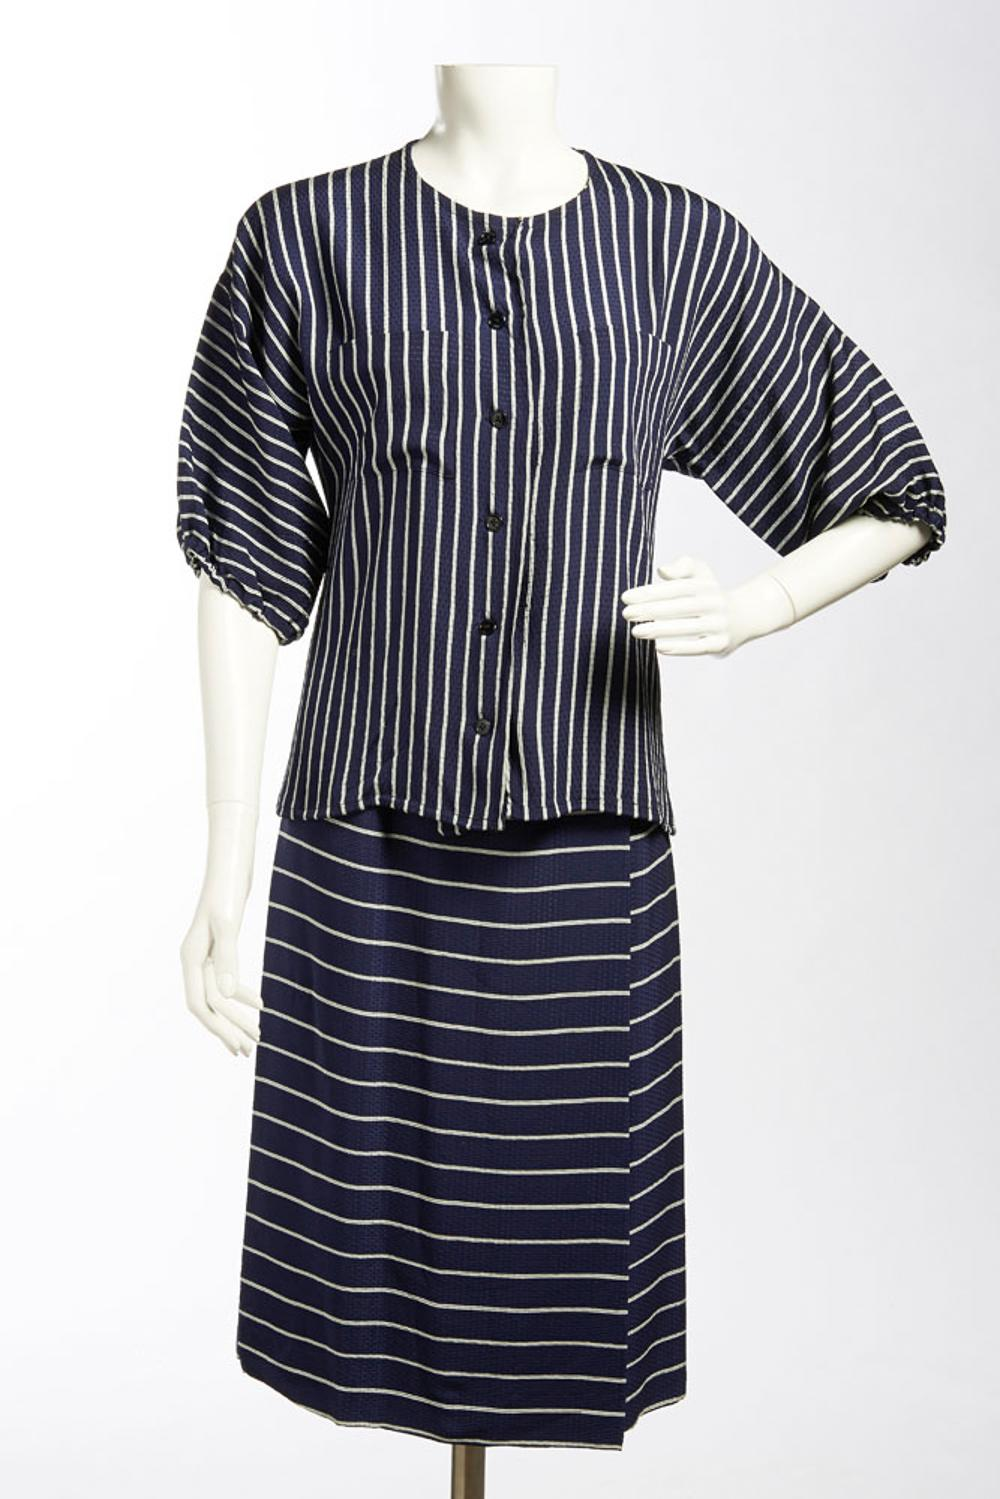 Lanvin, blouse and skirt in blue fabric with stripes